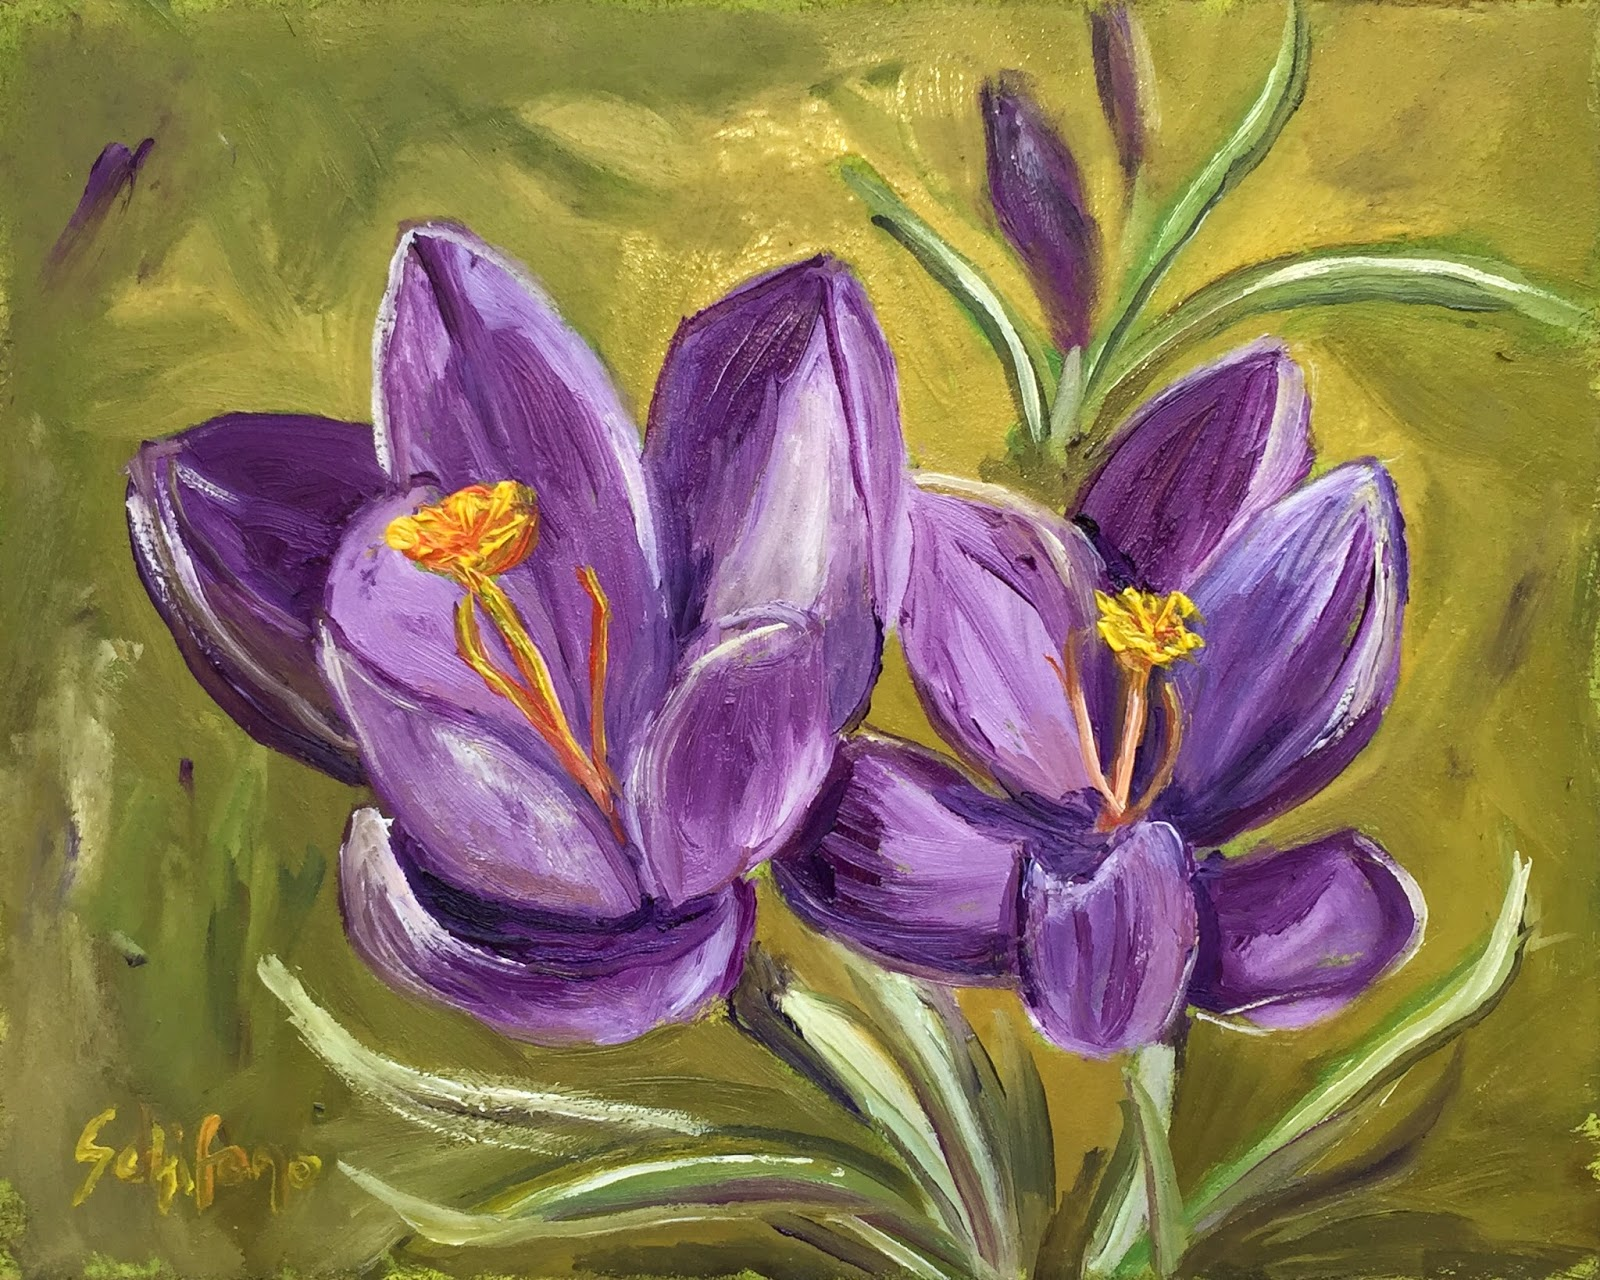 Grand Island painter, Kathy Schifano